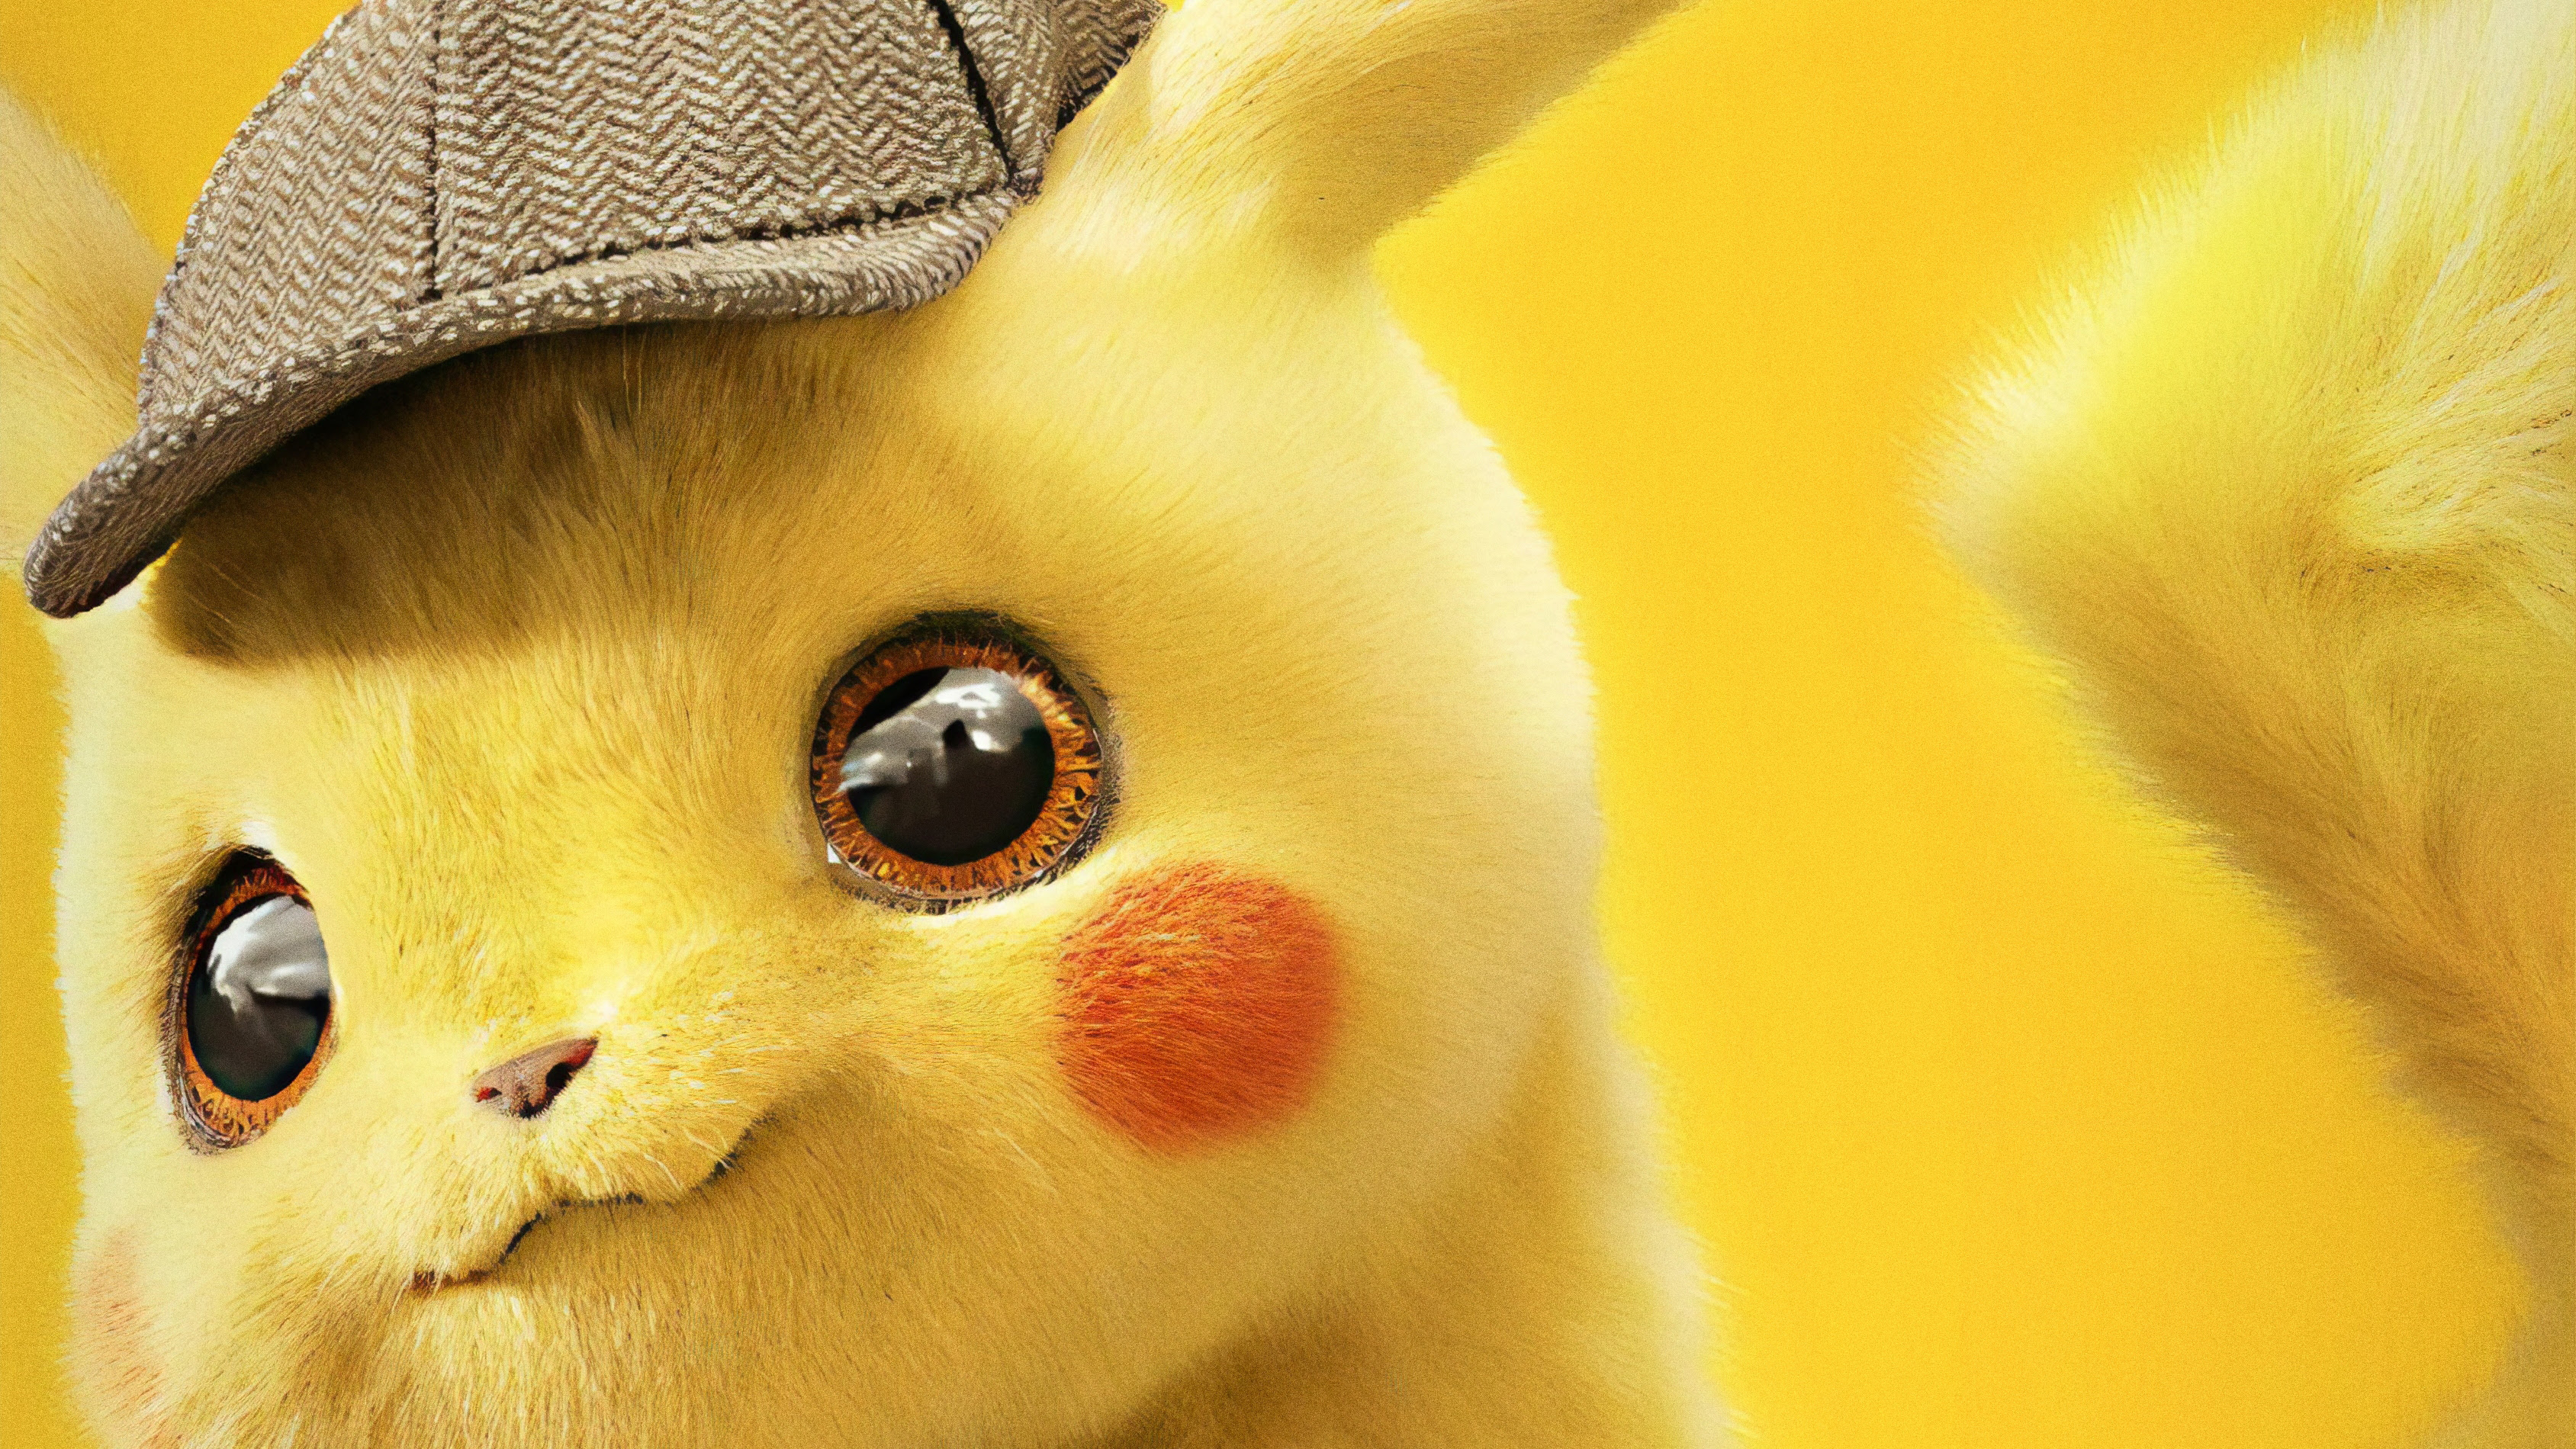 Download Pikachu Wallpaper Hd